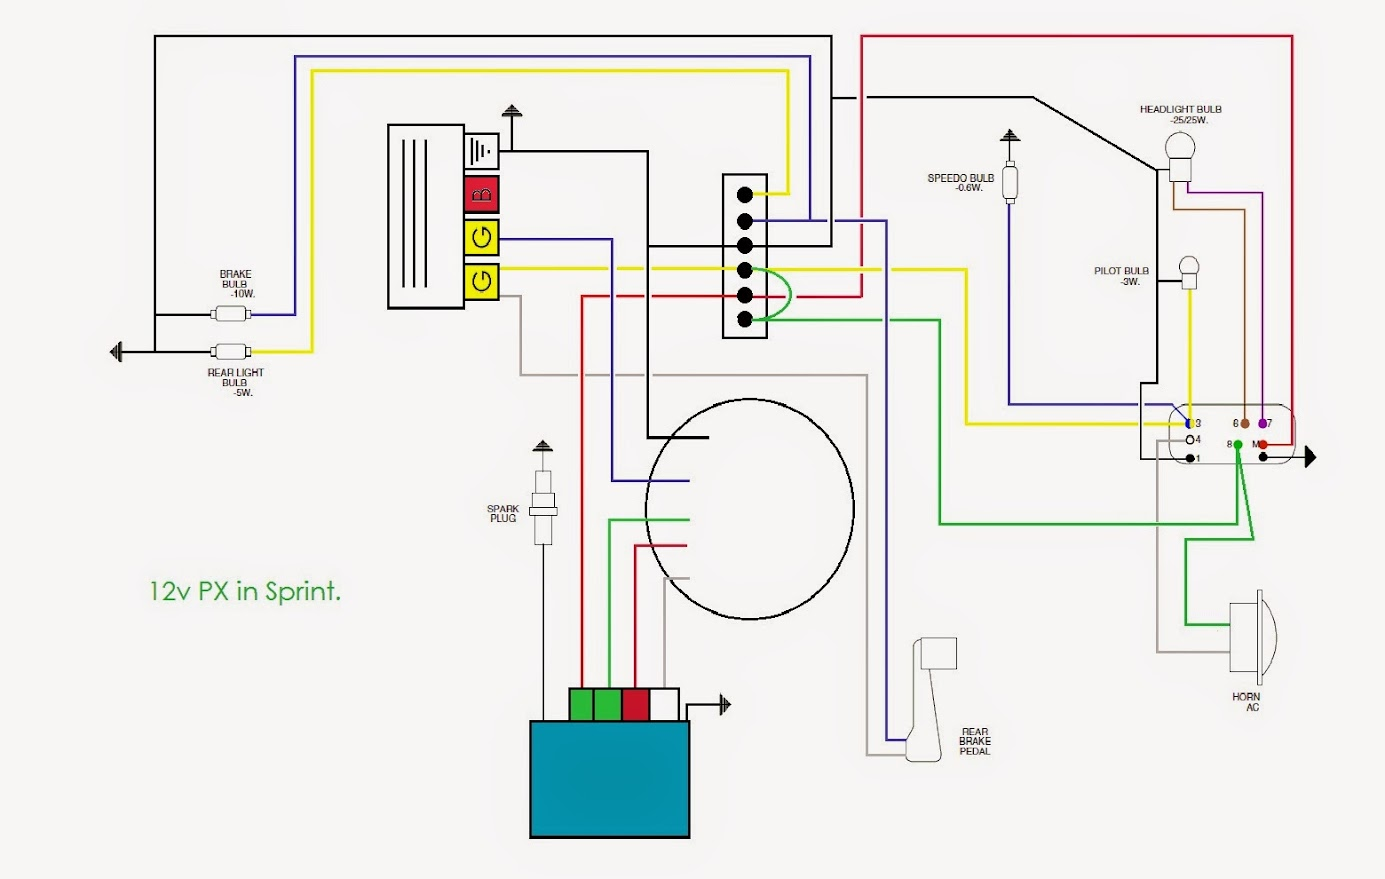 12v Wiring Diagram : Lambretta v wiring diagram images